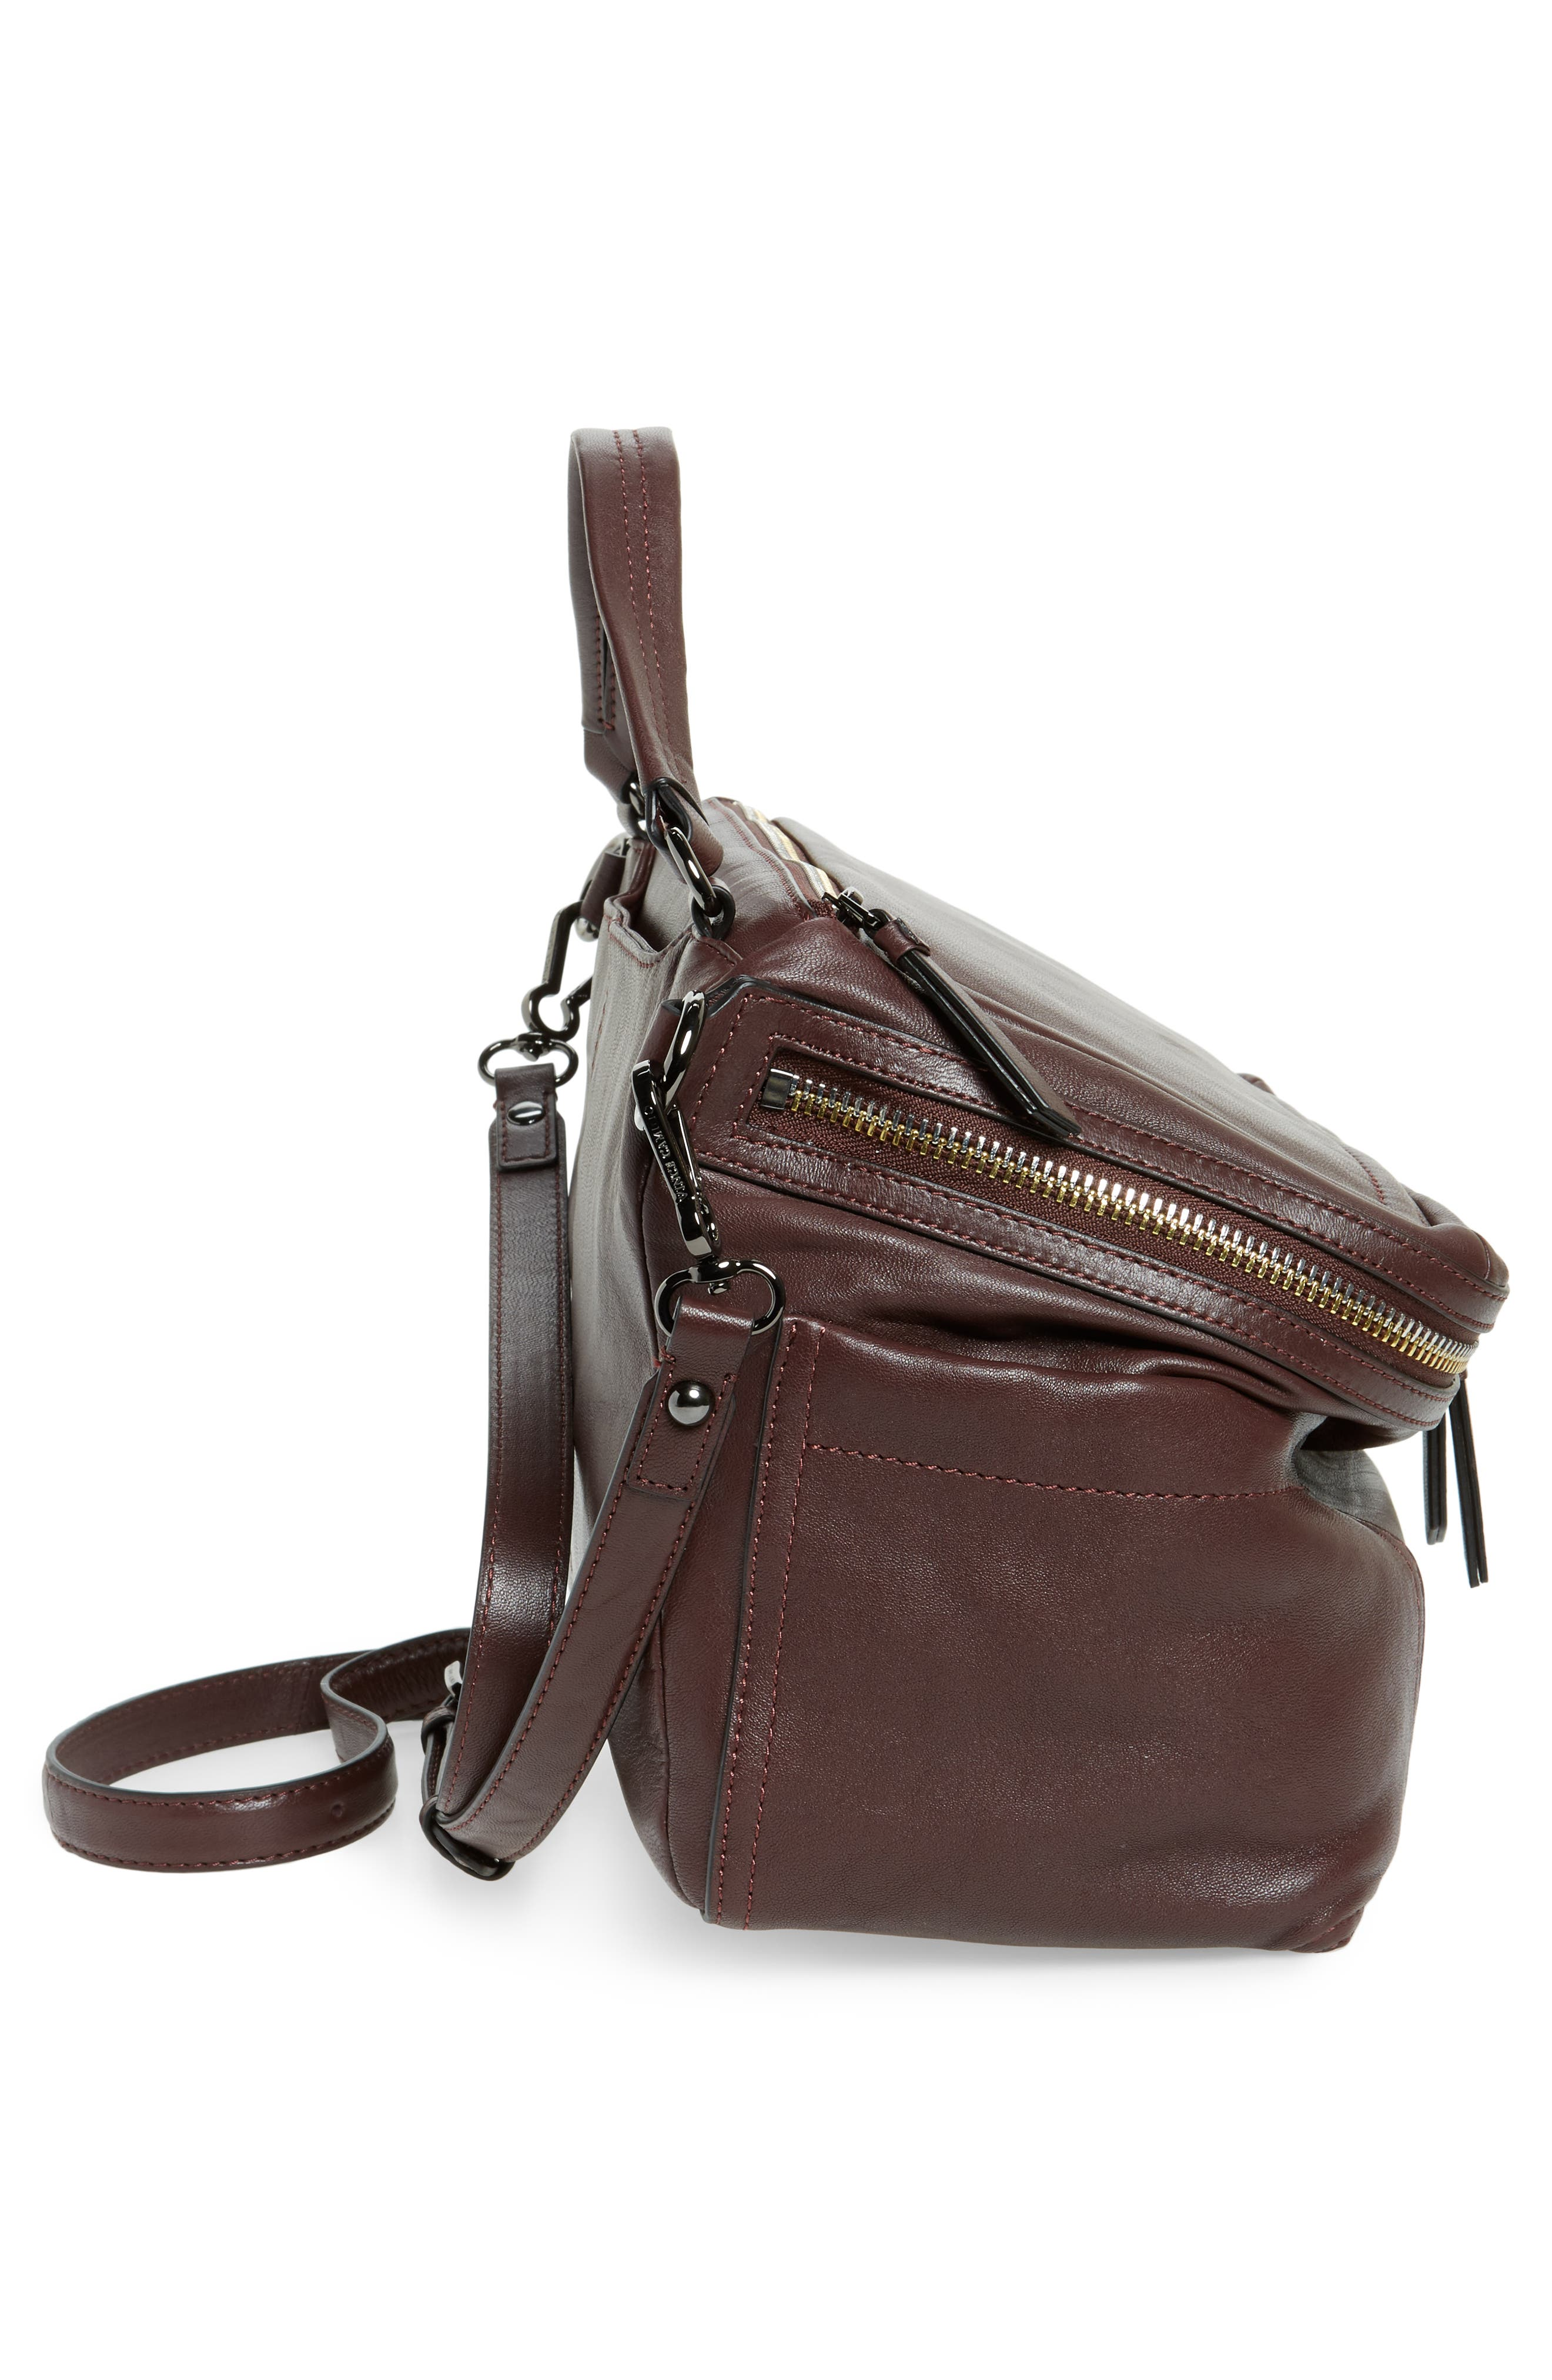 Large Patch Leather Crossbody Bag,                             Alternate thumbnail 5, color,                             Black Cherry